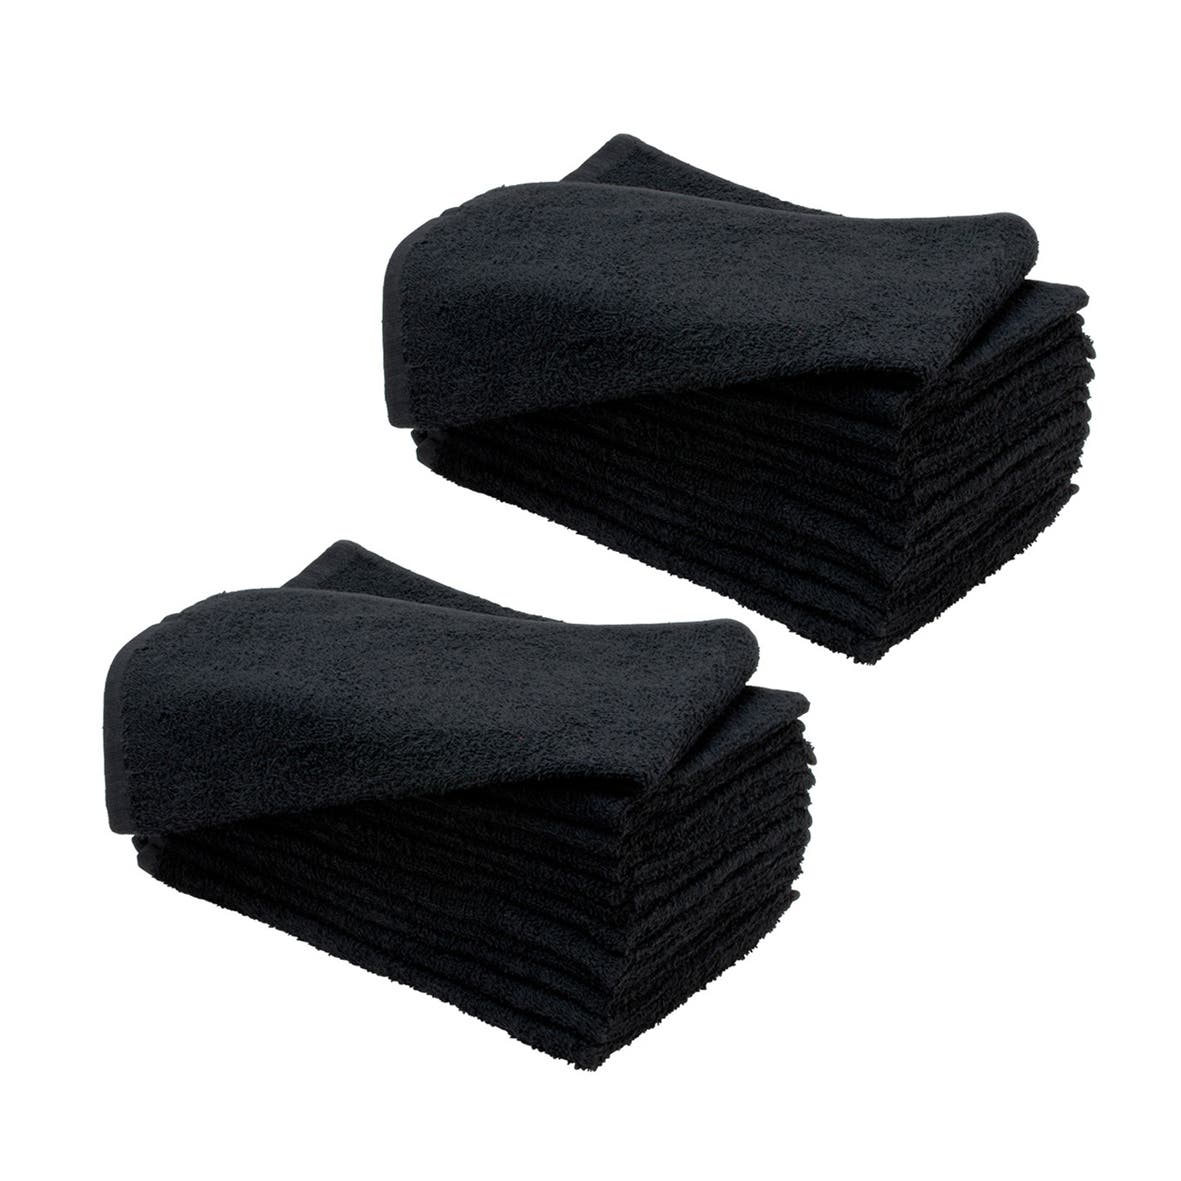 SydneySalonSupplies 135g LUXE BLACK Hand Towels 100% Cotton Hair/Barber/Beauty/Gym